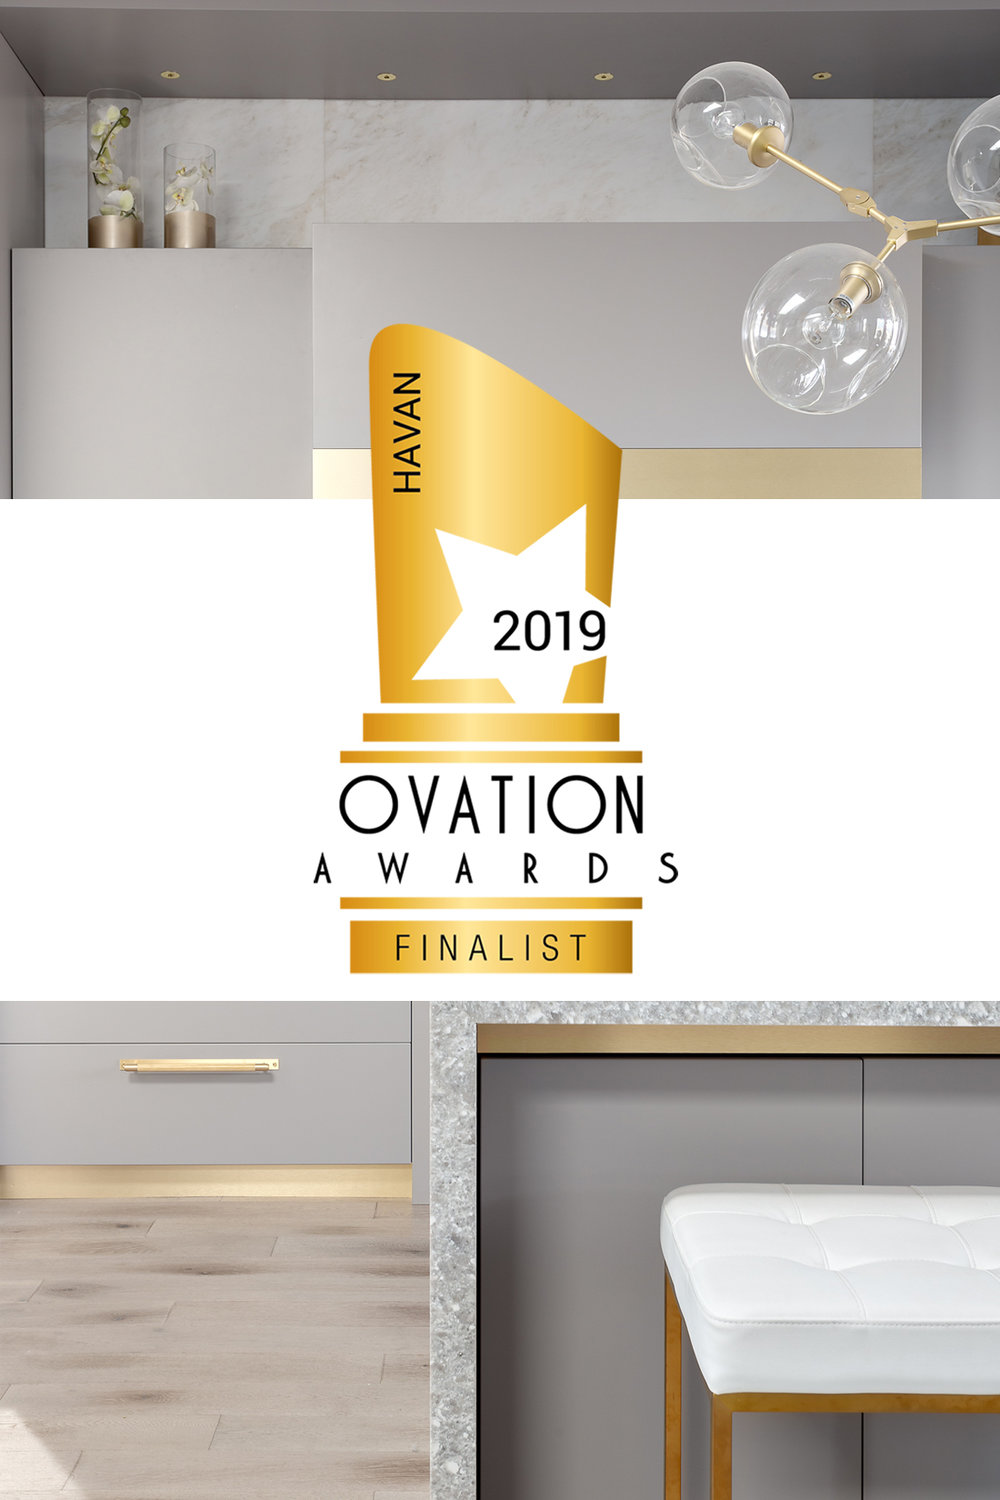 Ovation Awards Final.jpg